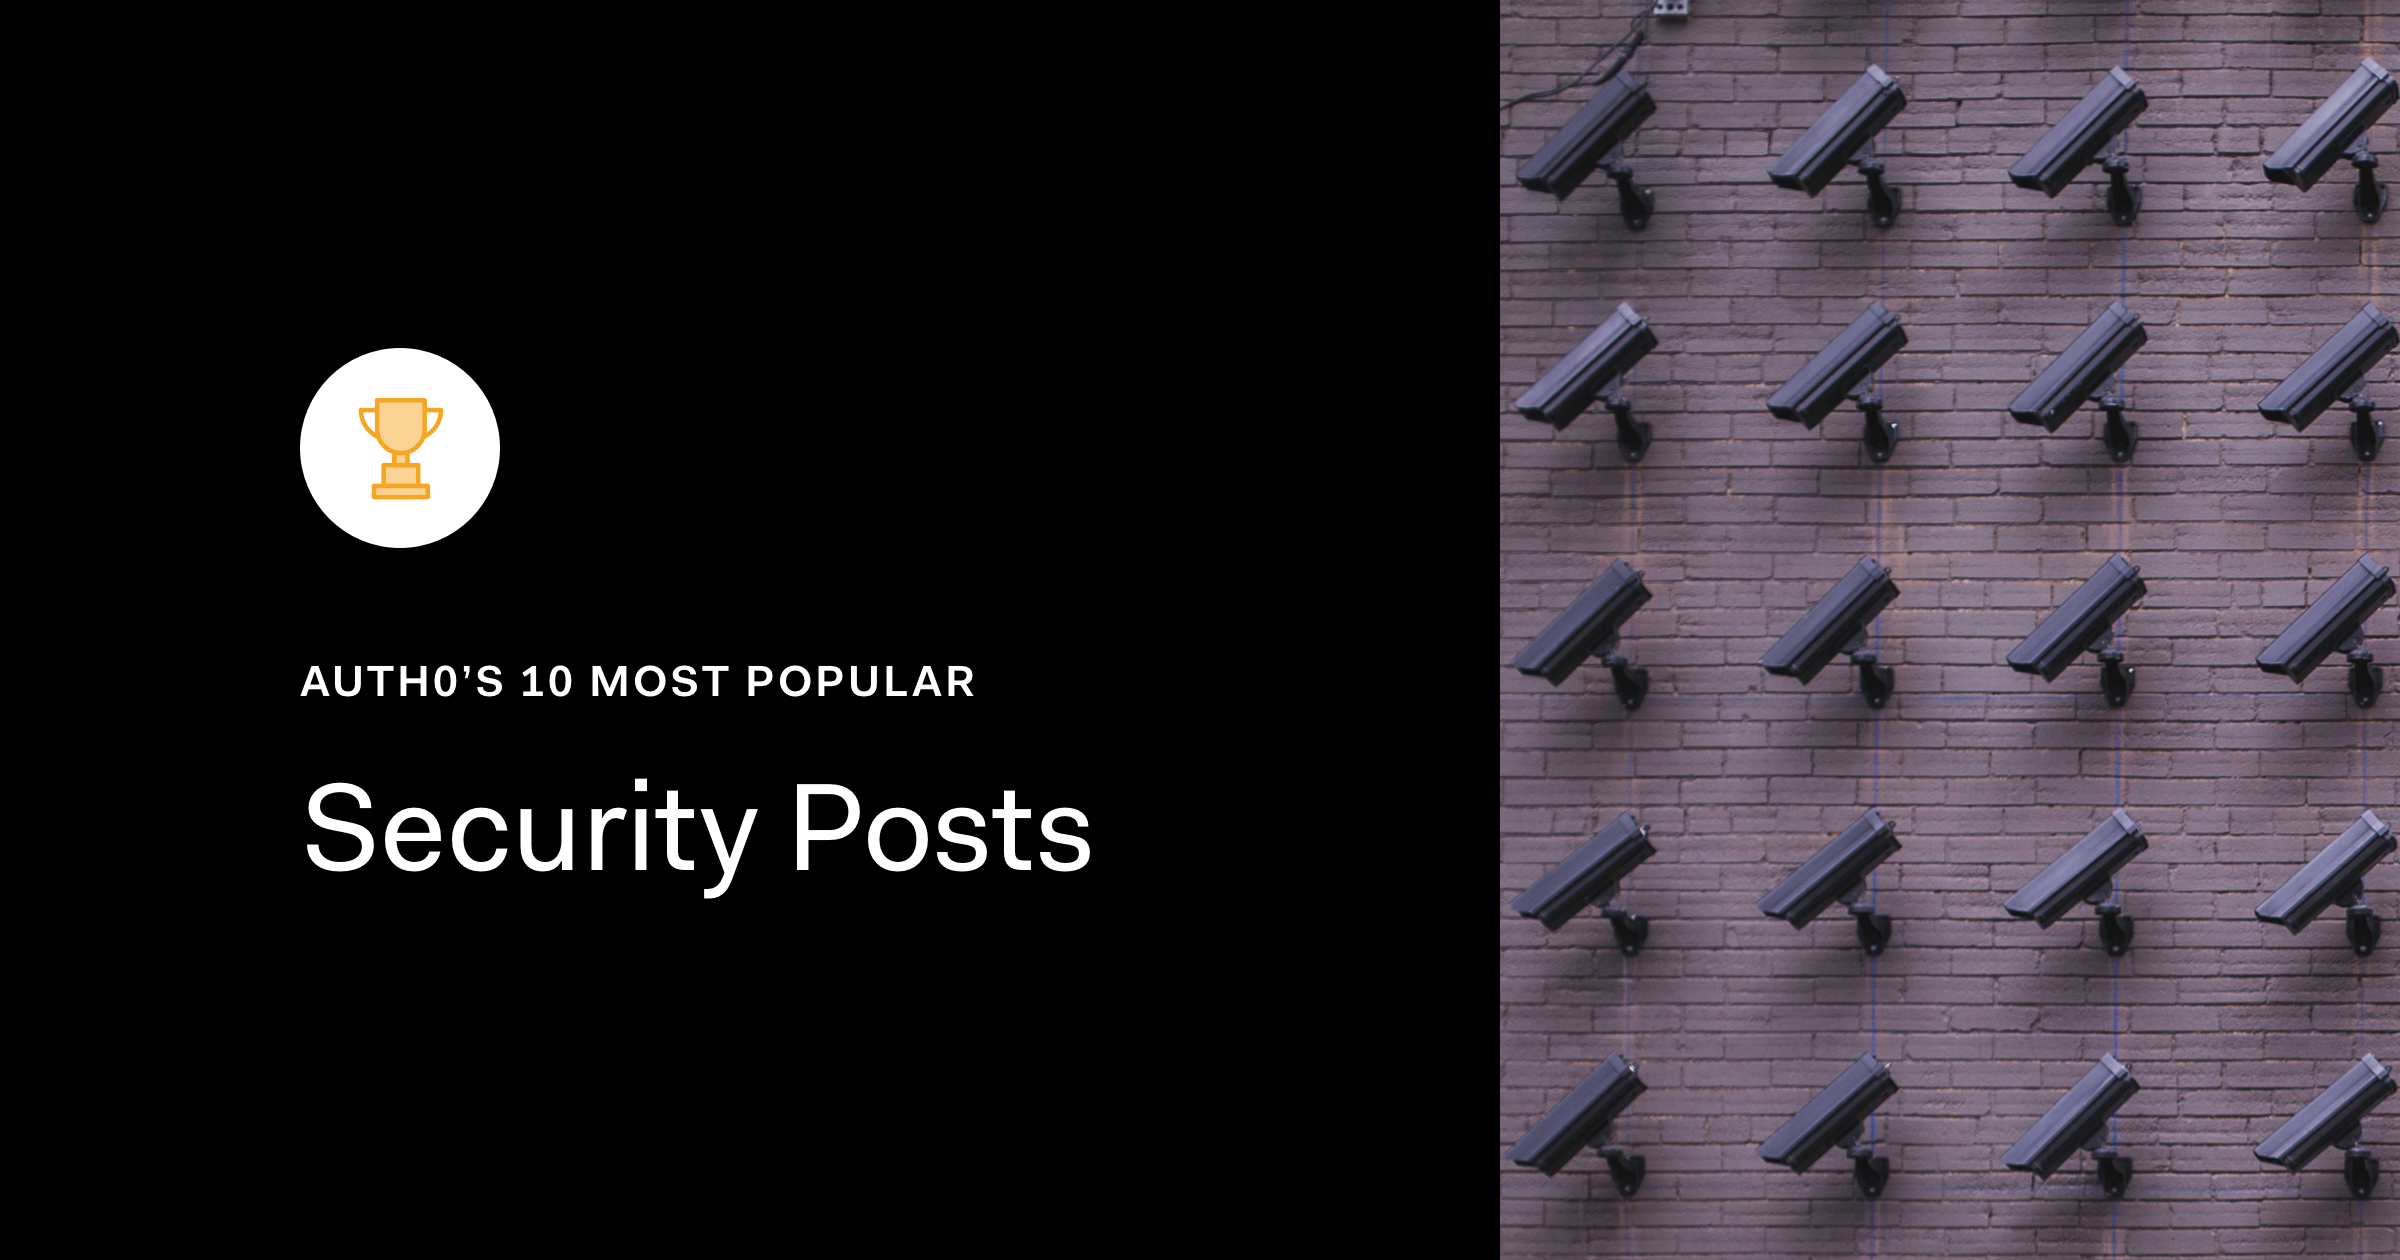 Auth0's 10 Most-Popular Security Posts